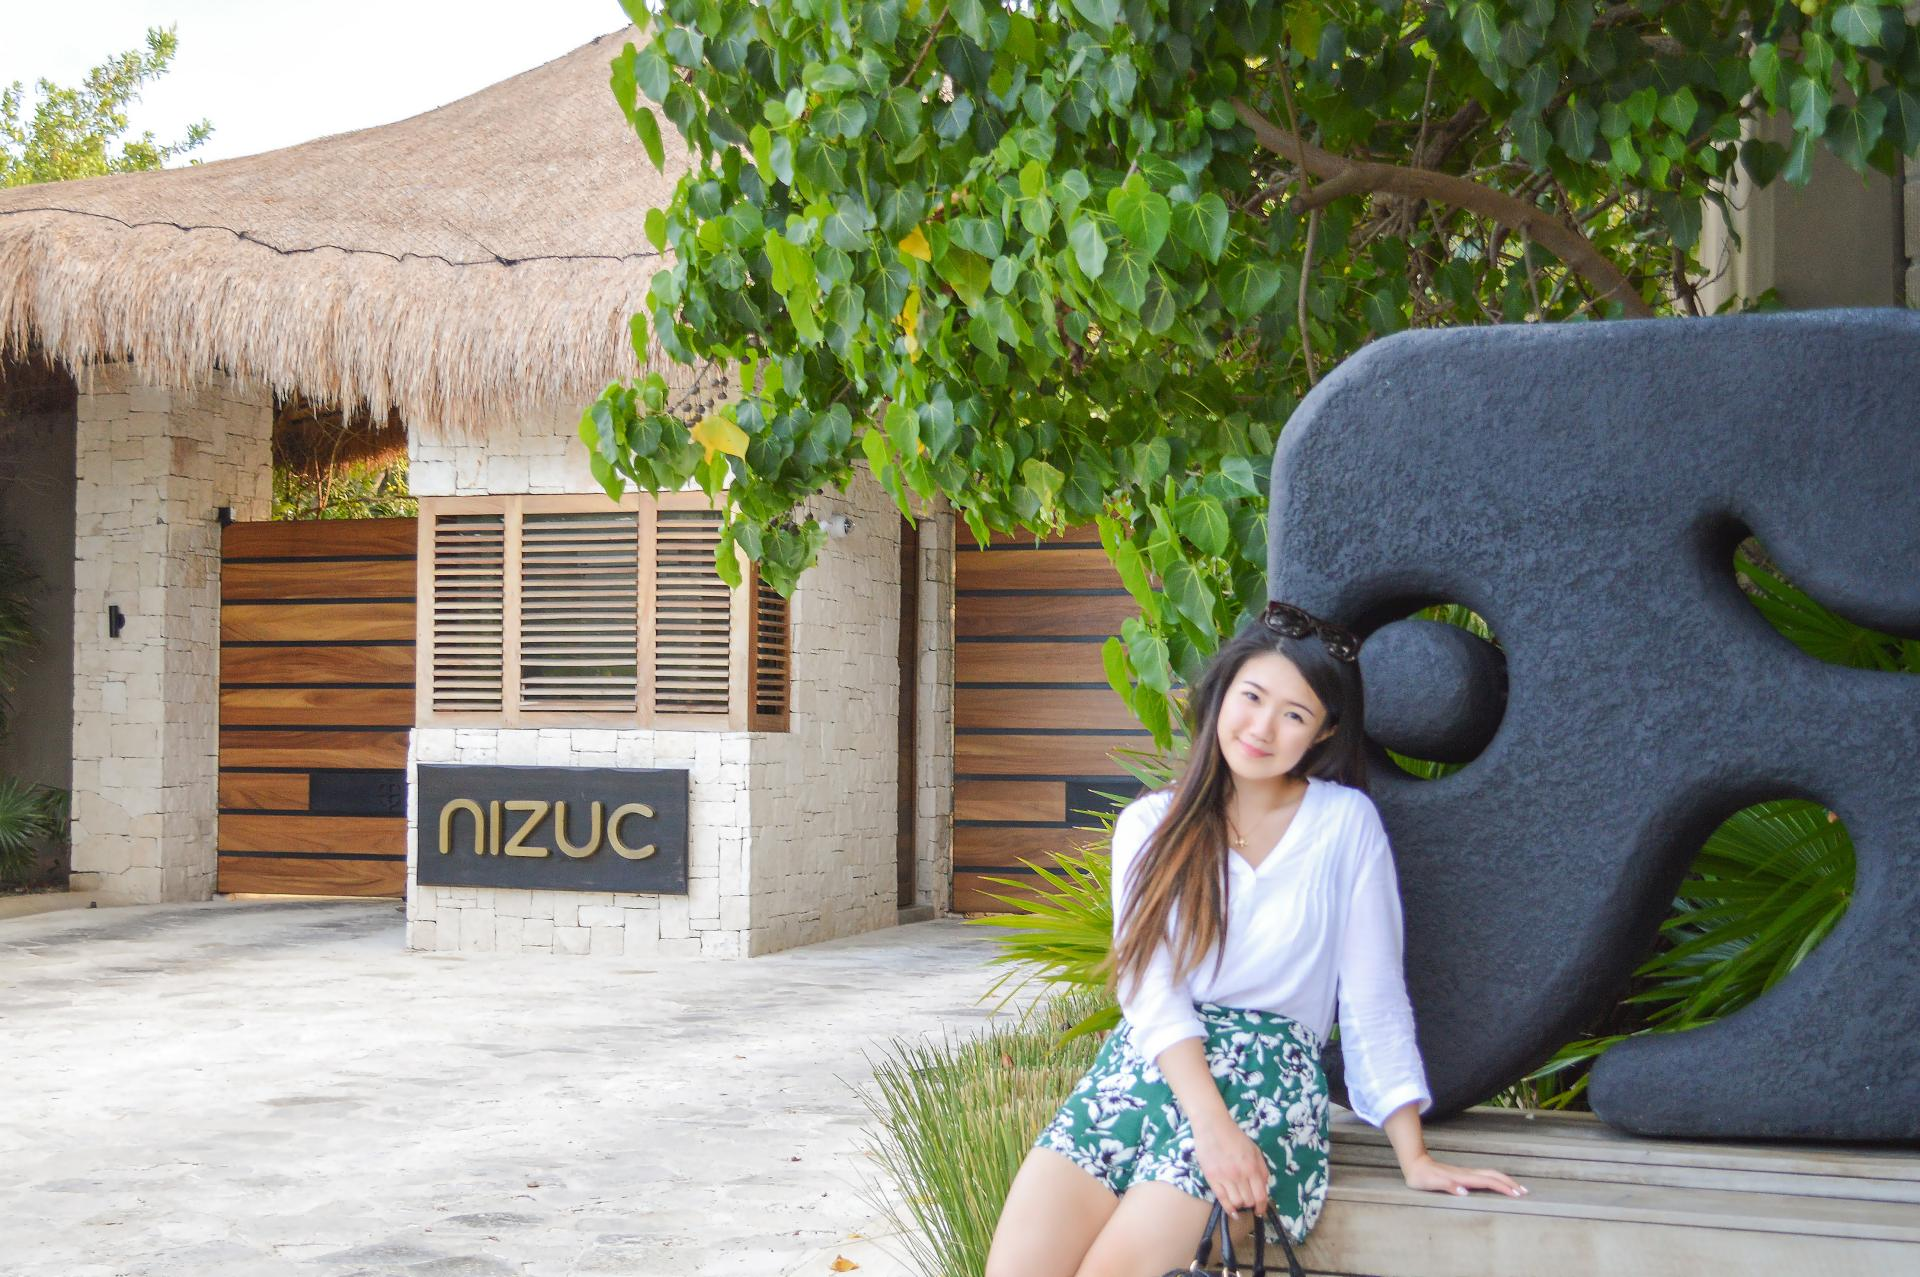 Nizuc Resort & Spa